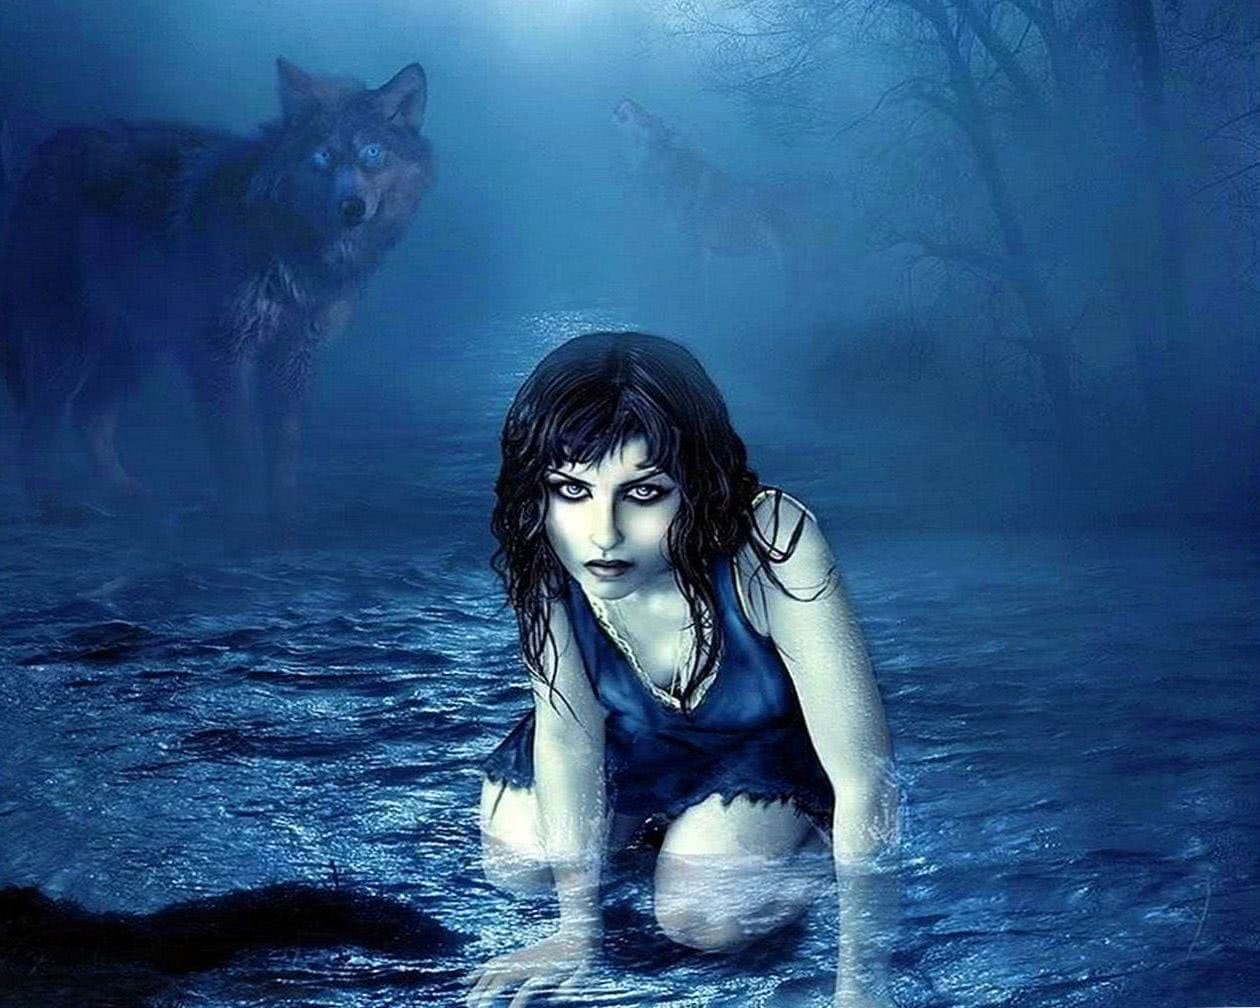 Wallpaper Of Girl And Wolf